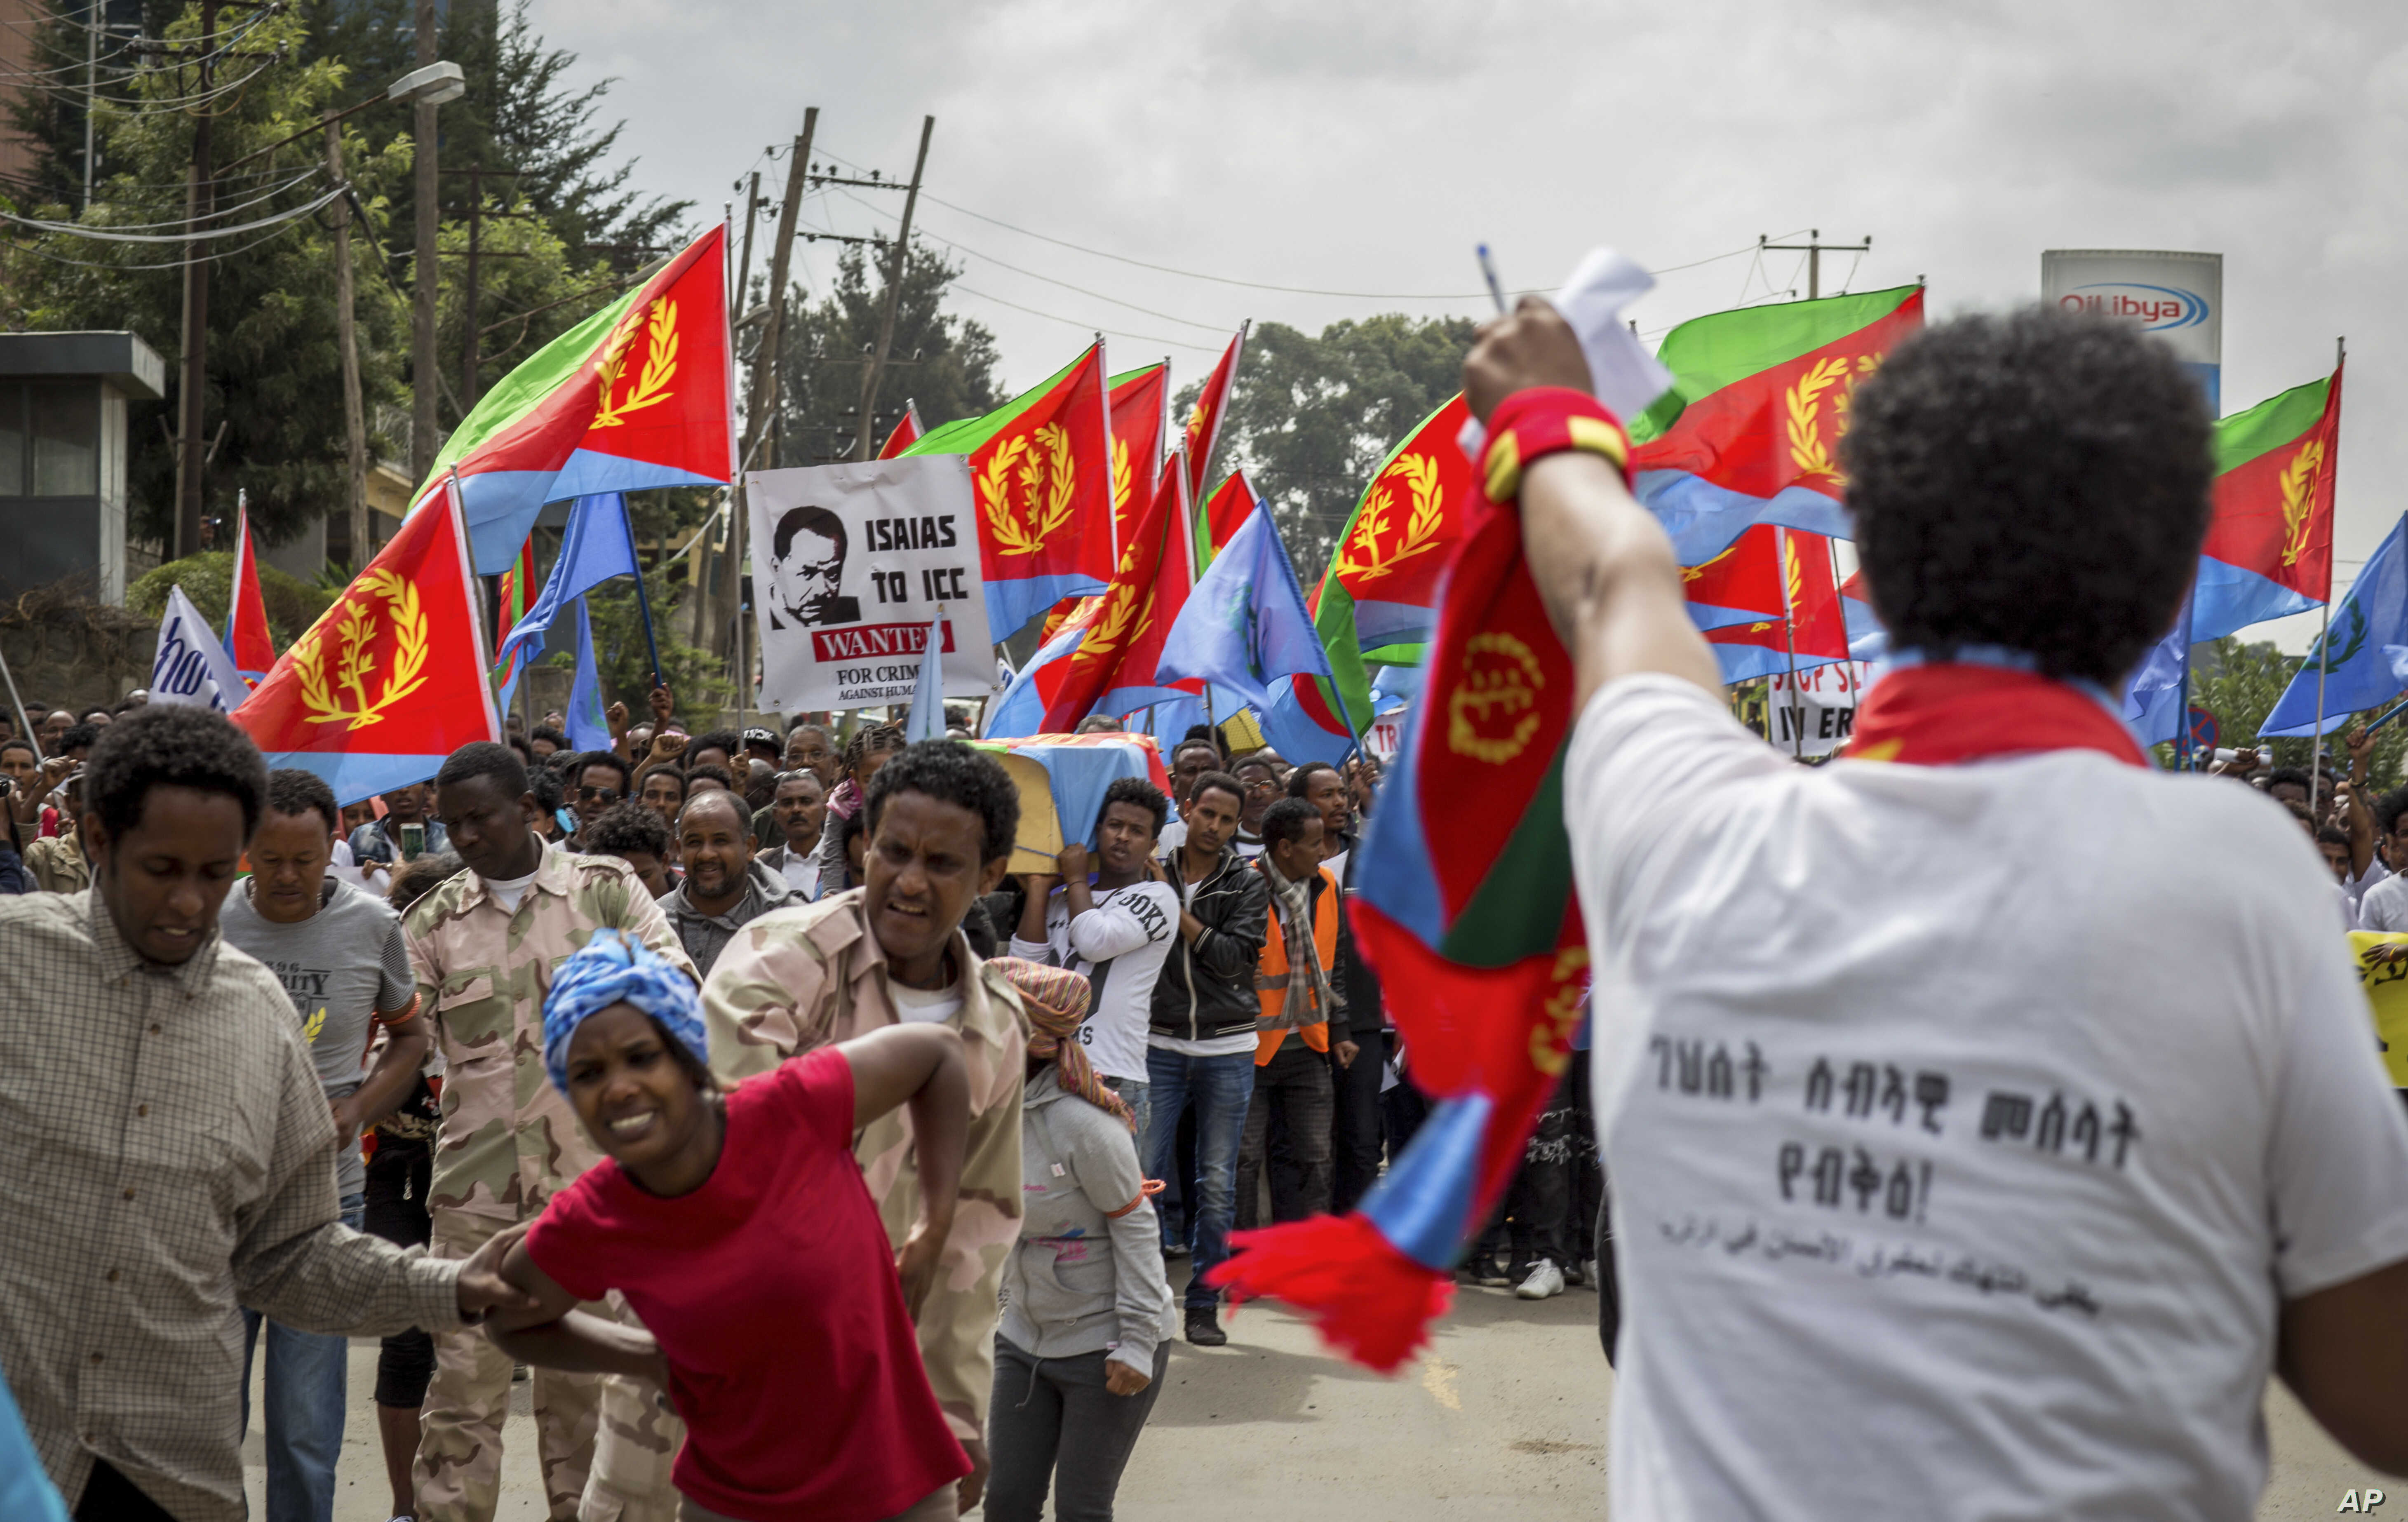 FILE - Eritrean exiles, some holding Eritrean flags and some dressed as Eritrean military members, simulating beatings and torture, left, rally outside African Union headquarters, in Addis Ababa, Ethiopia, June 23, 2016.